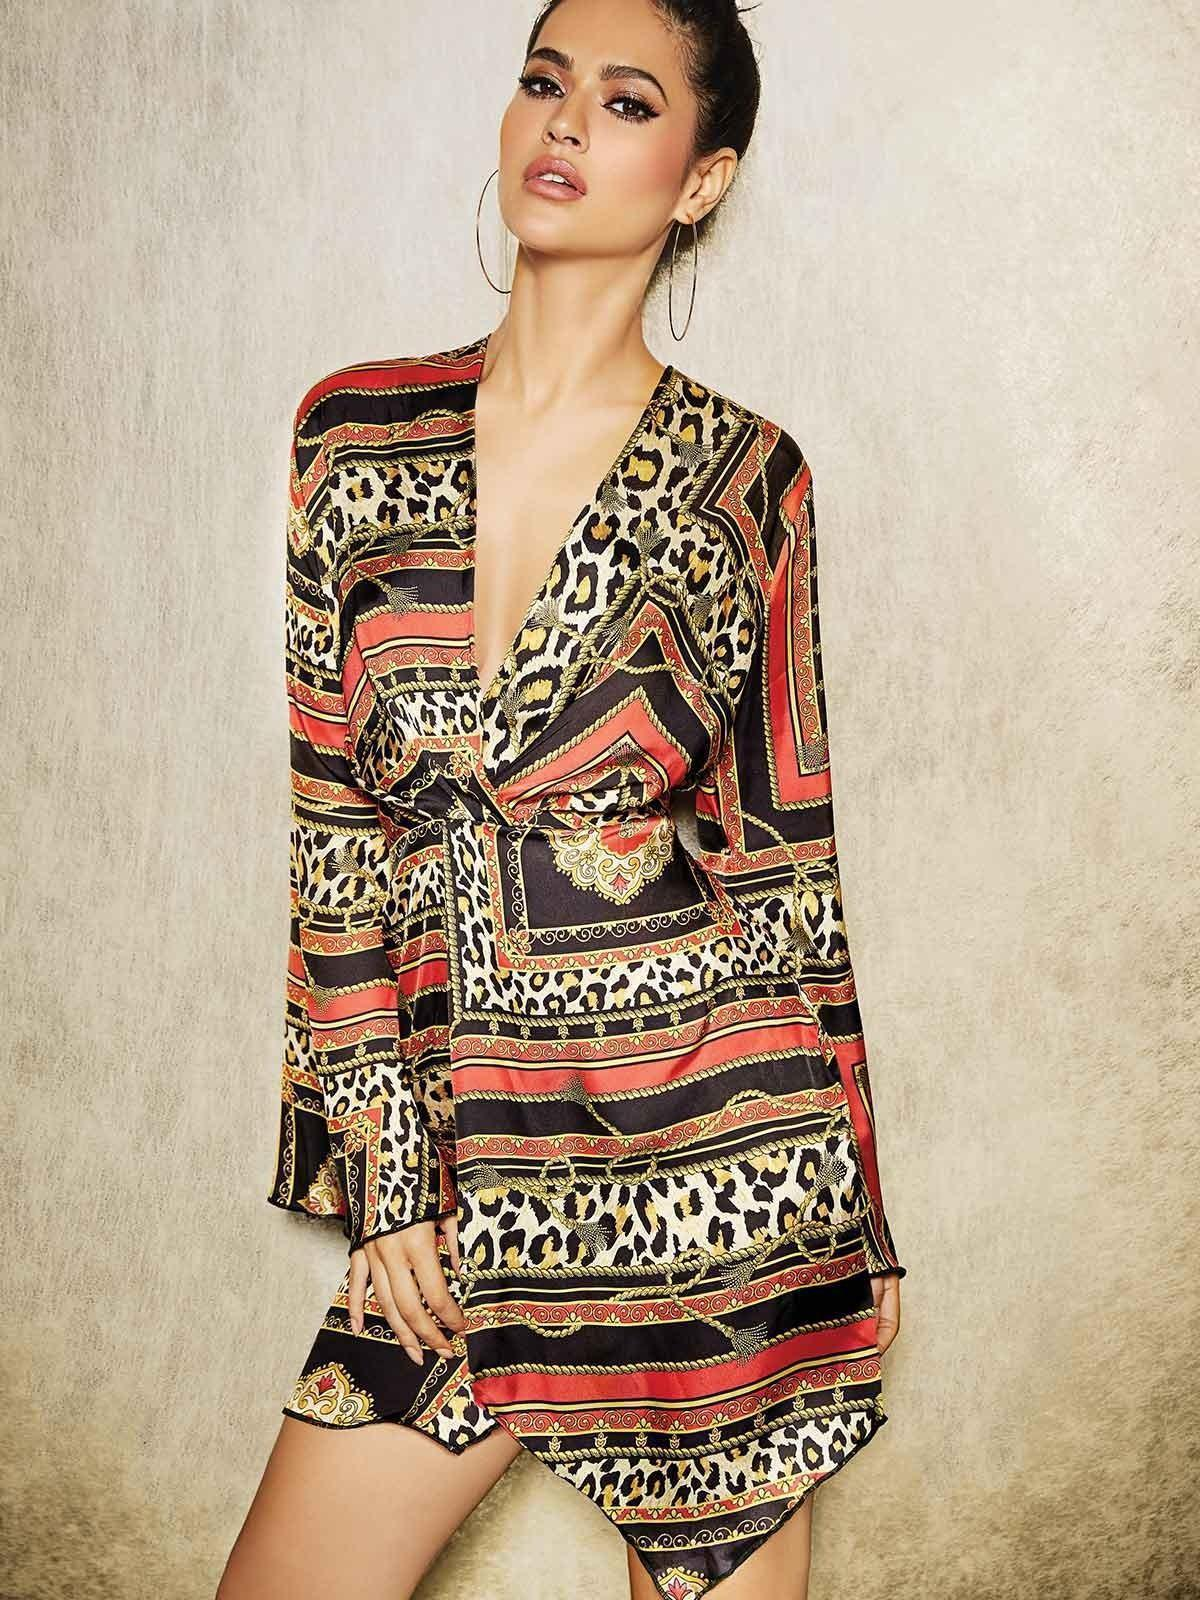 Show your wild side off to the world in this modern, animal print dress.